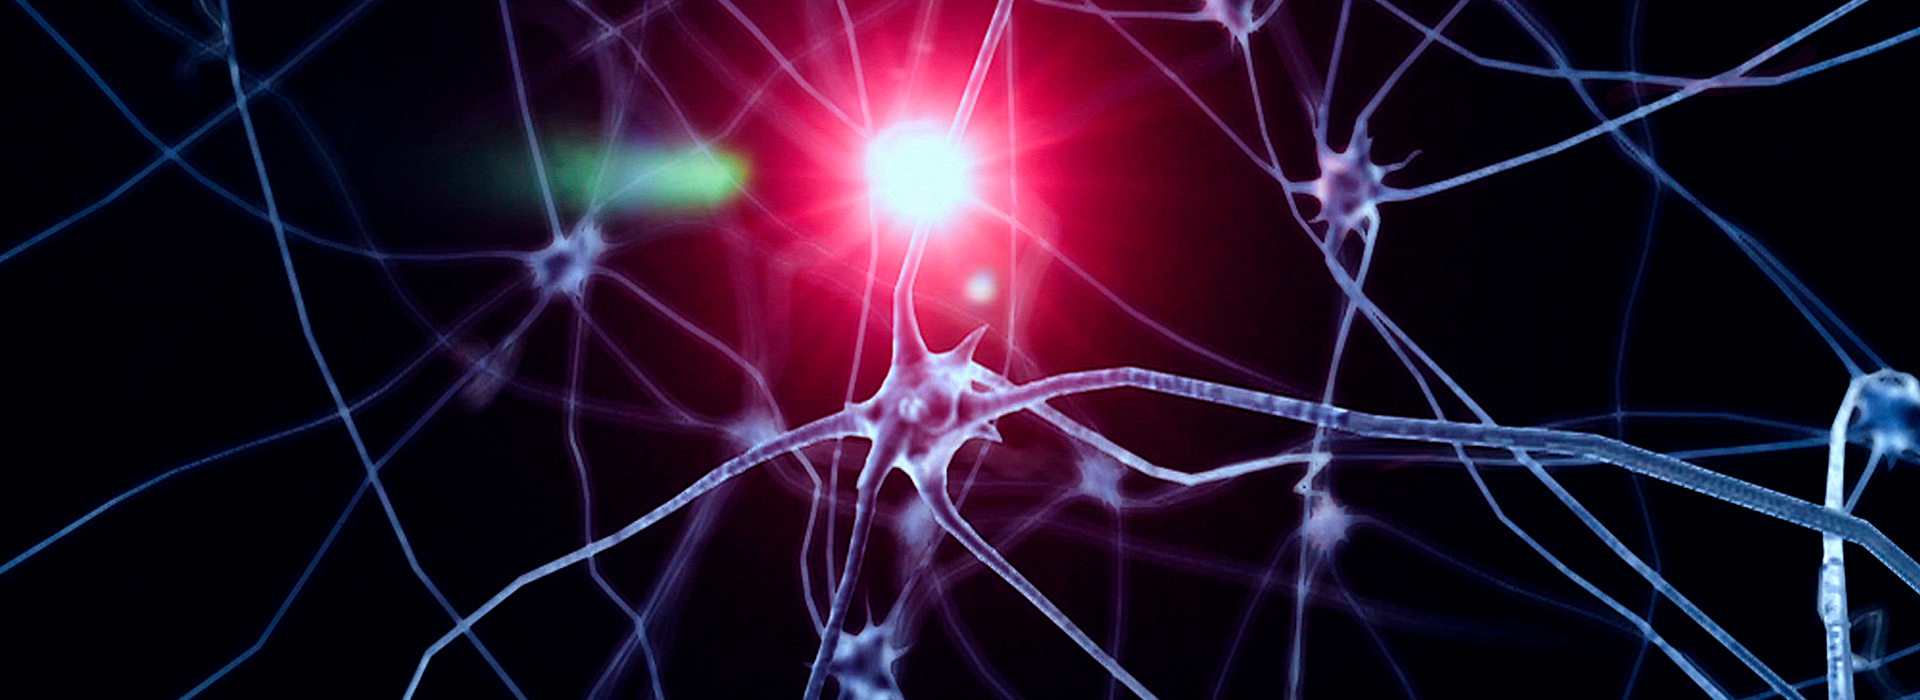 Neurons showing activity in the brain